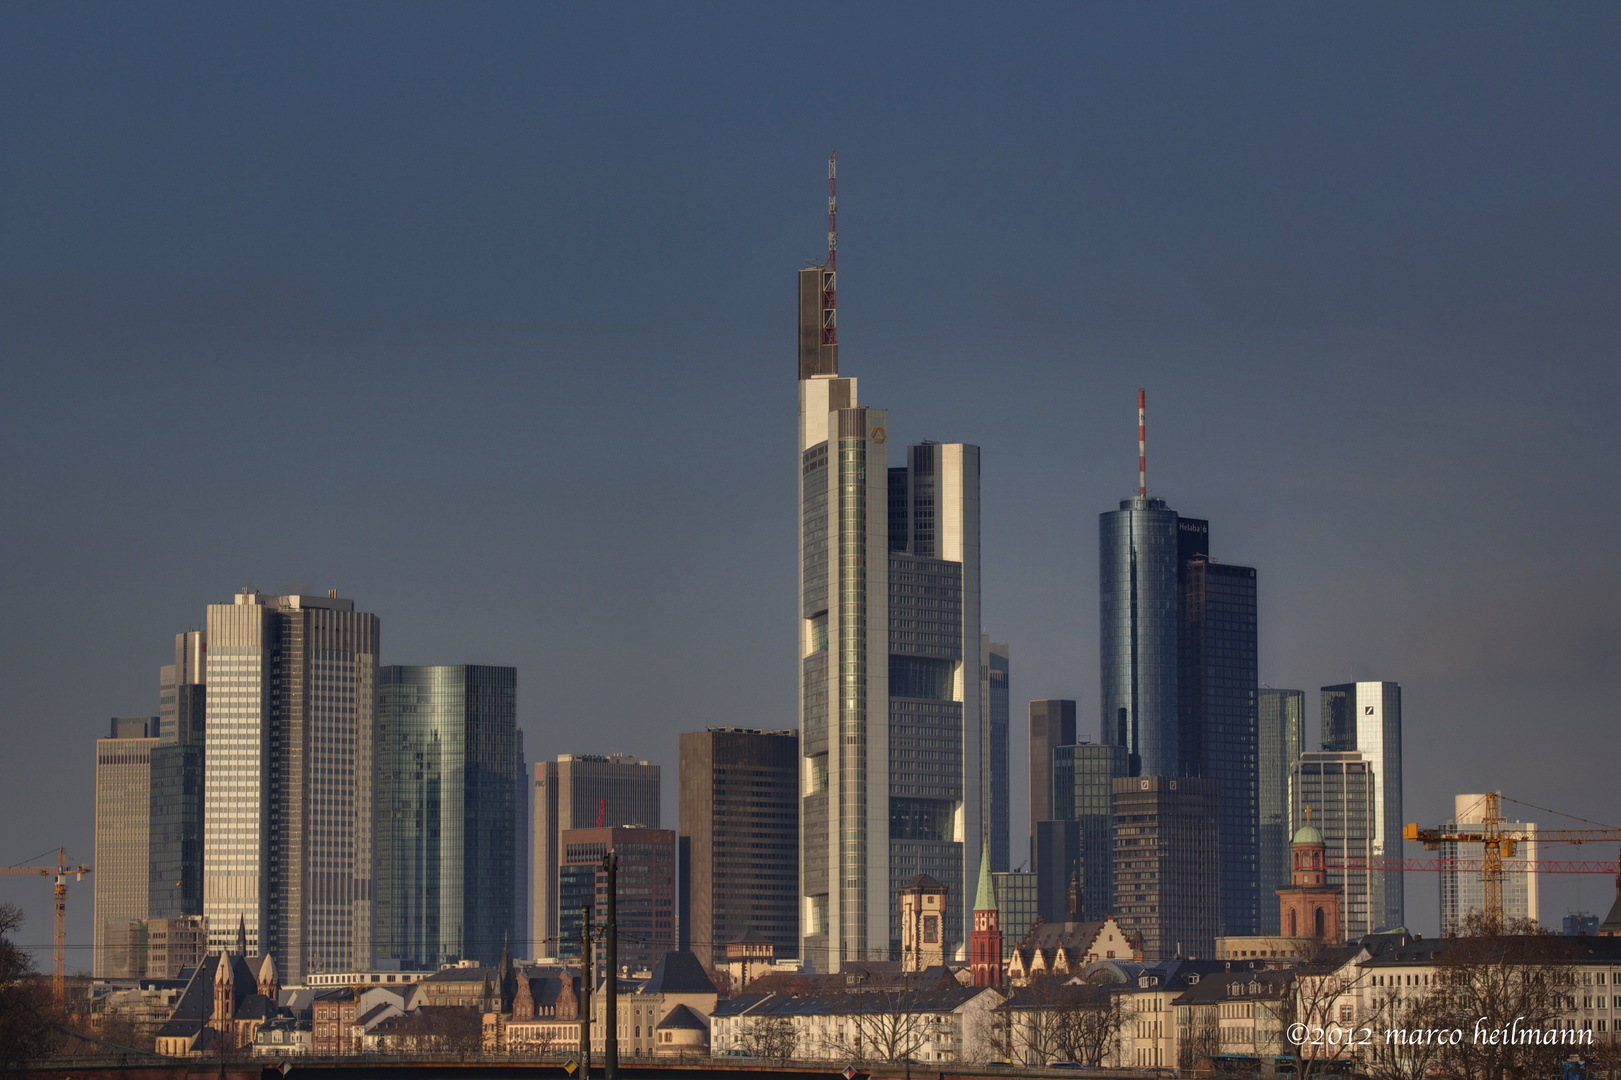 mainhattan skyline frankfurt am main foto bild architektur stadtlandschaft skylines. Black Bedroom Furniture Sets. Home Design Ideas